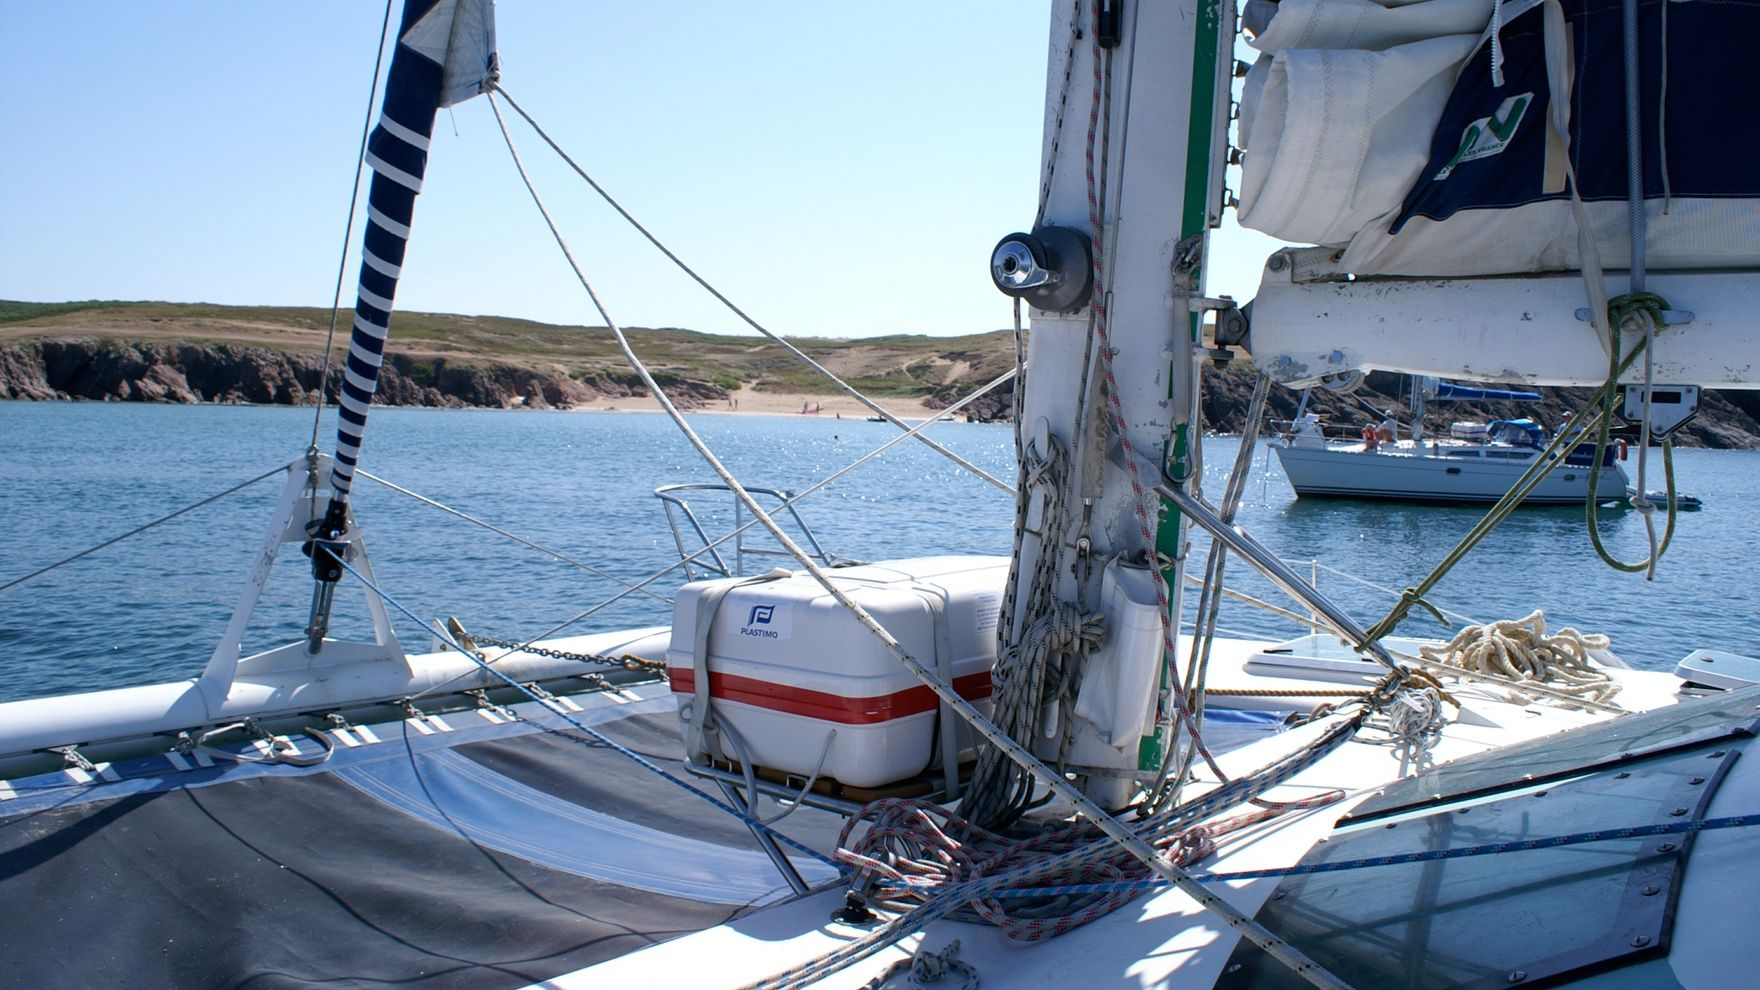 Learning yachting - from beginner to skipper